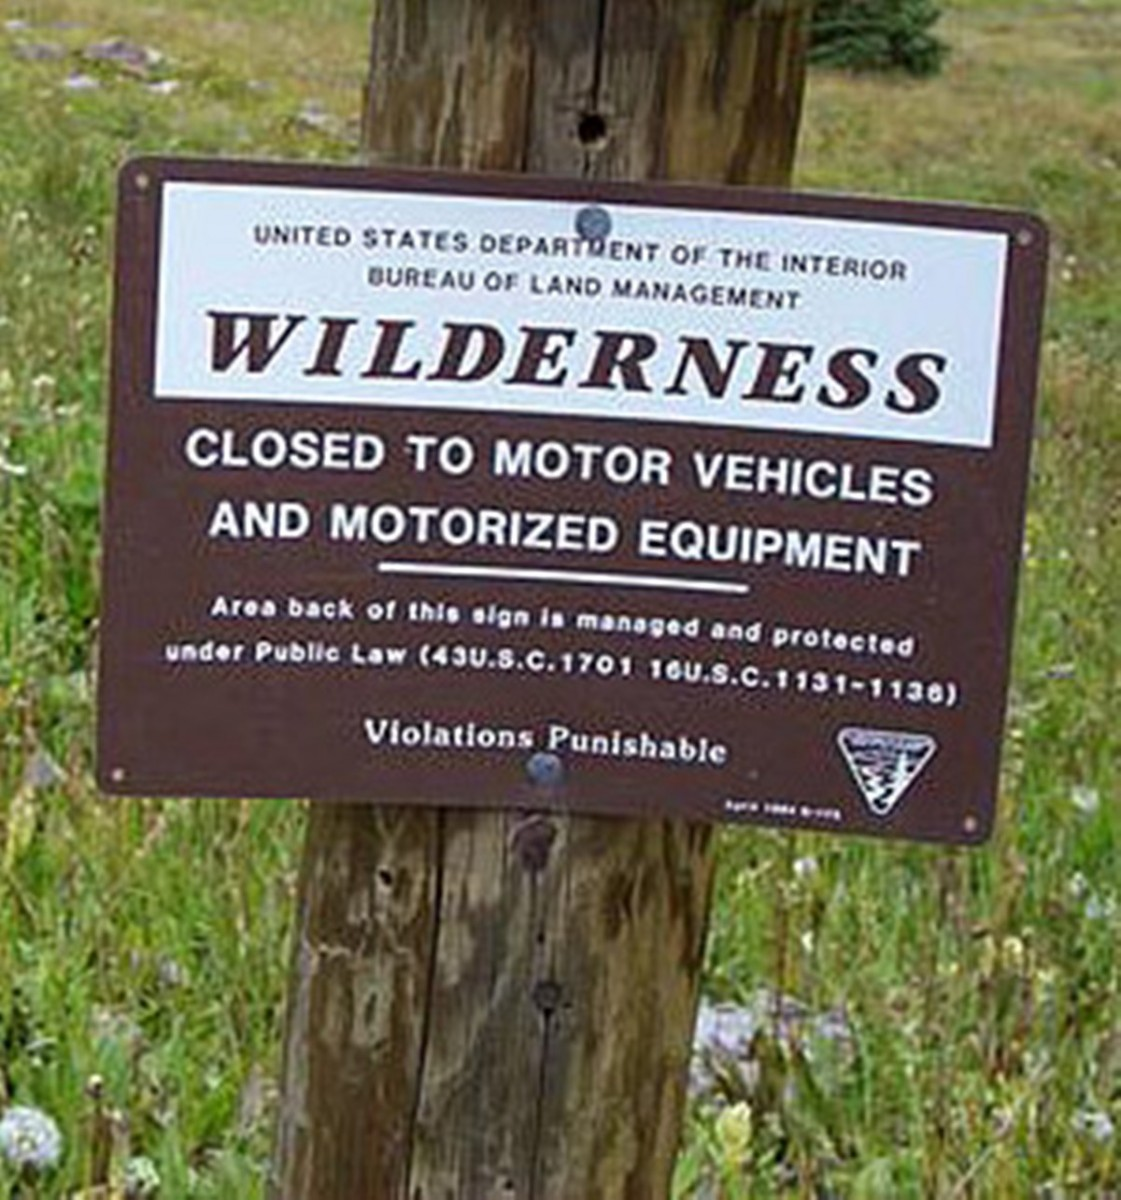 The BLM understood the real intent of Wilderness here and specifically signed to restrict motorized vehicles.